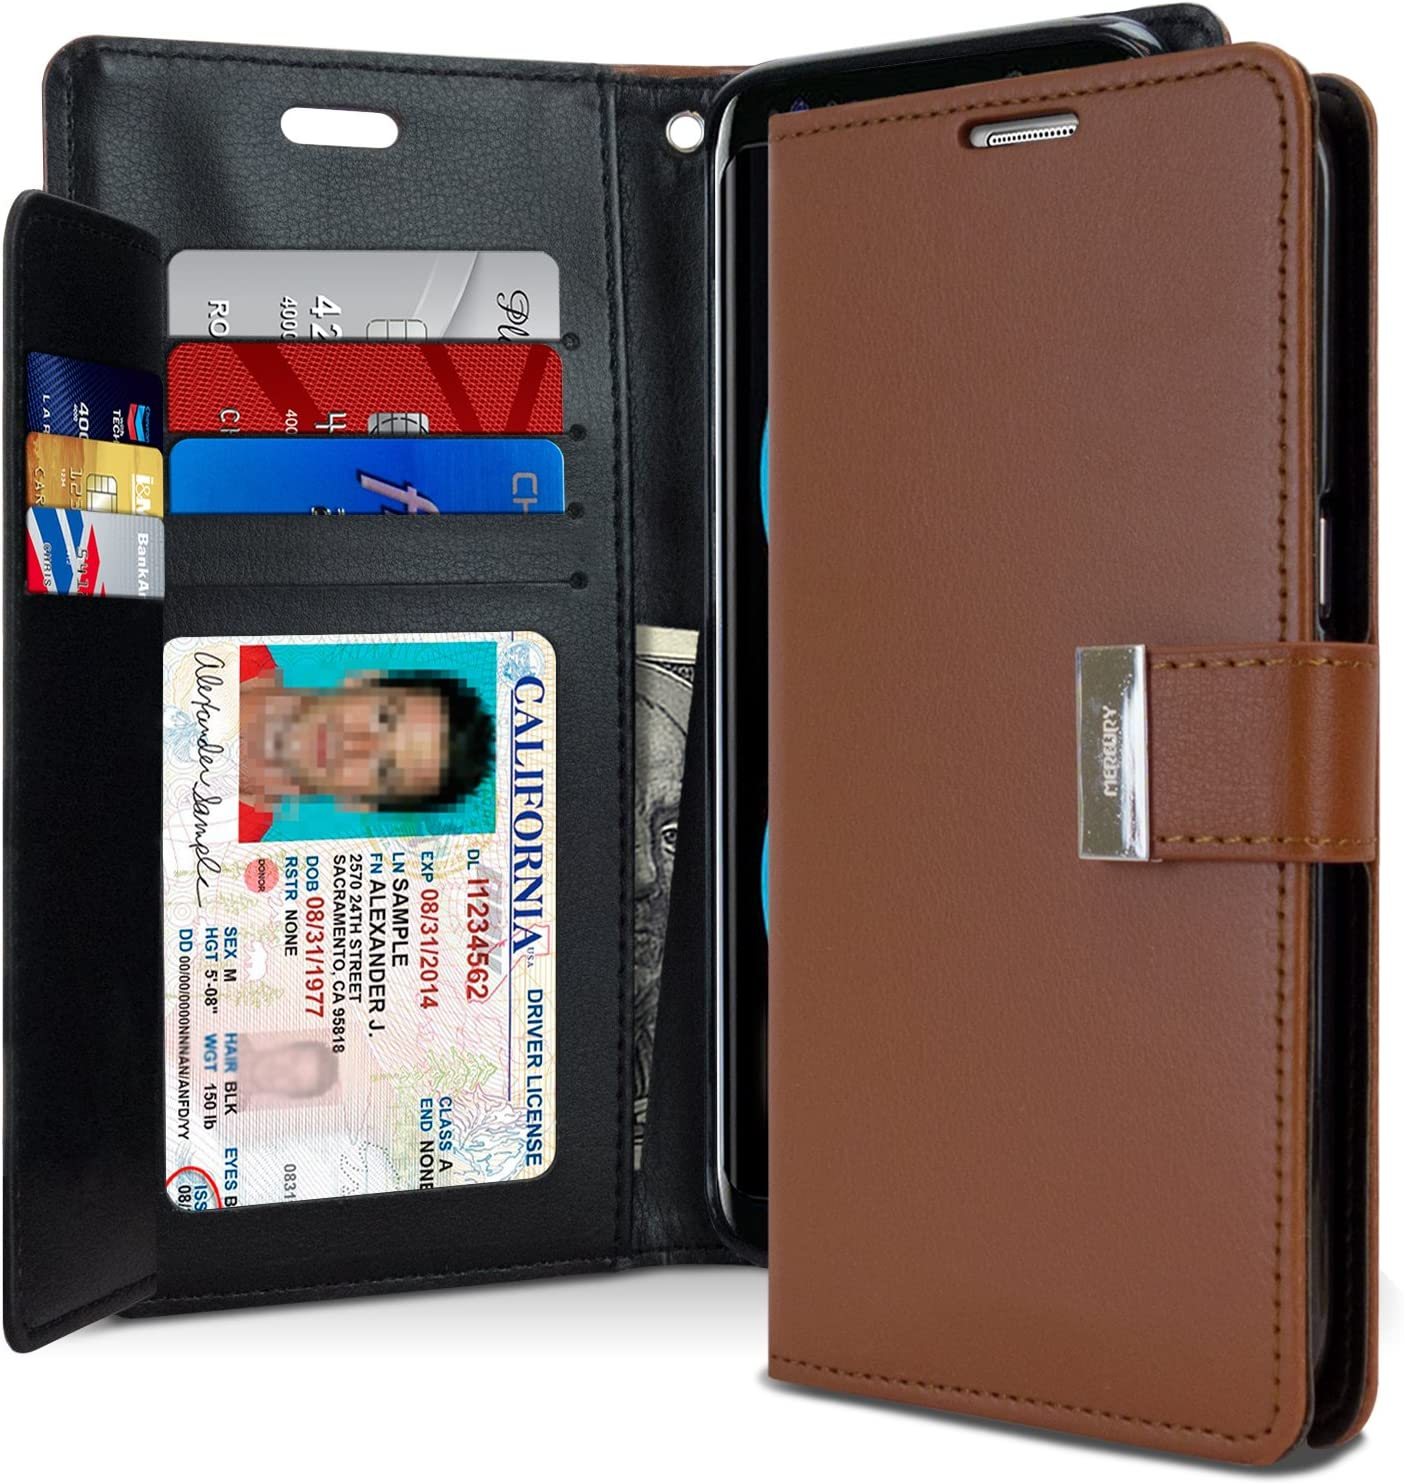 Goospery Rich Wallet for Samsung Galaxy S8 Plus Case (2017) Extra Card Slots Leather Flip Cover (Brown) S8P-RIC-BRN